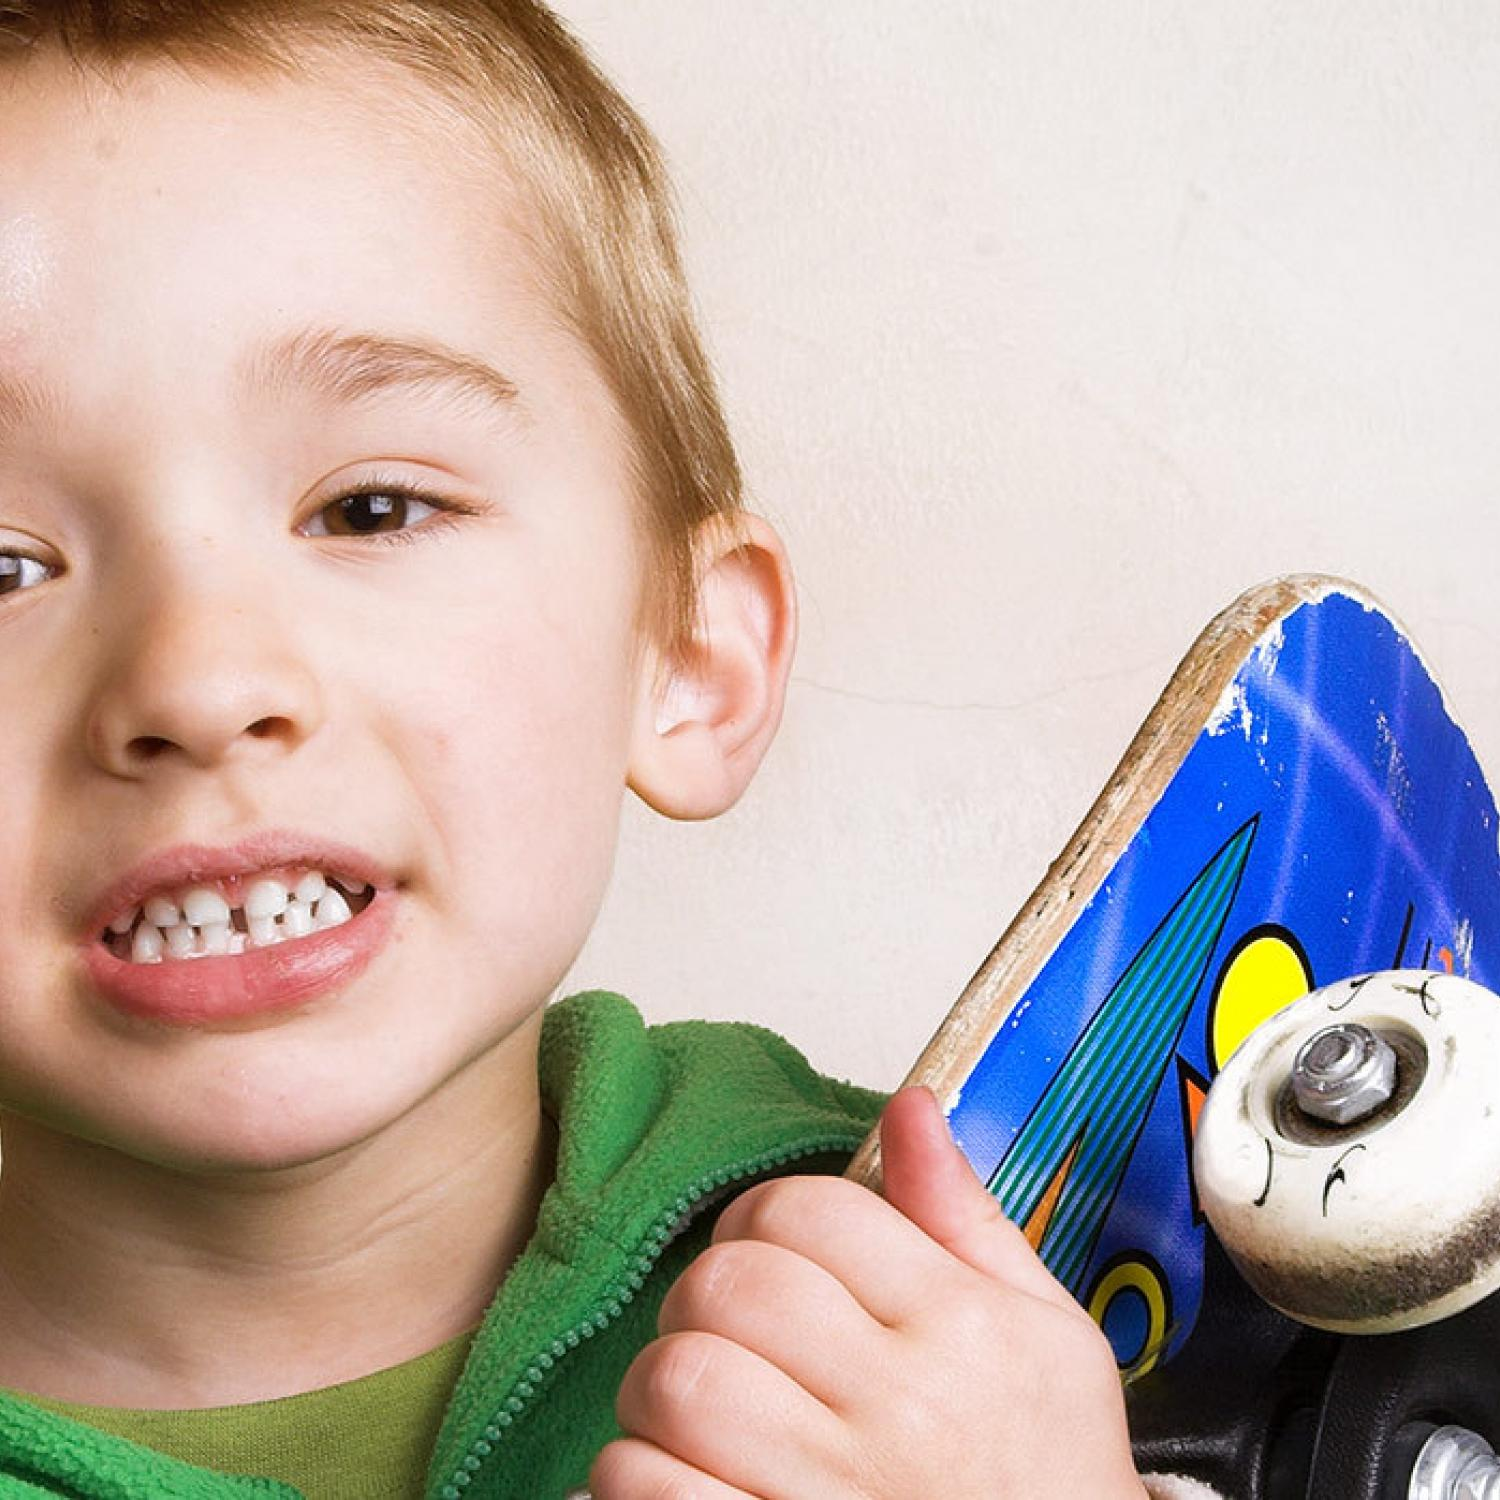 Children S Head Injuries 11 Things Every Parent Needs To